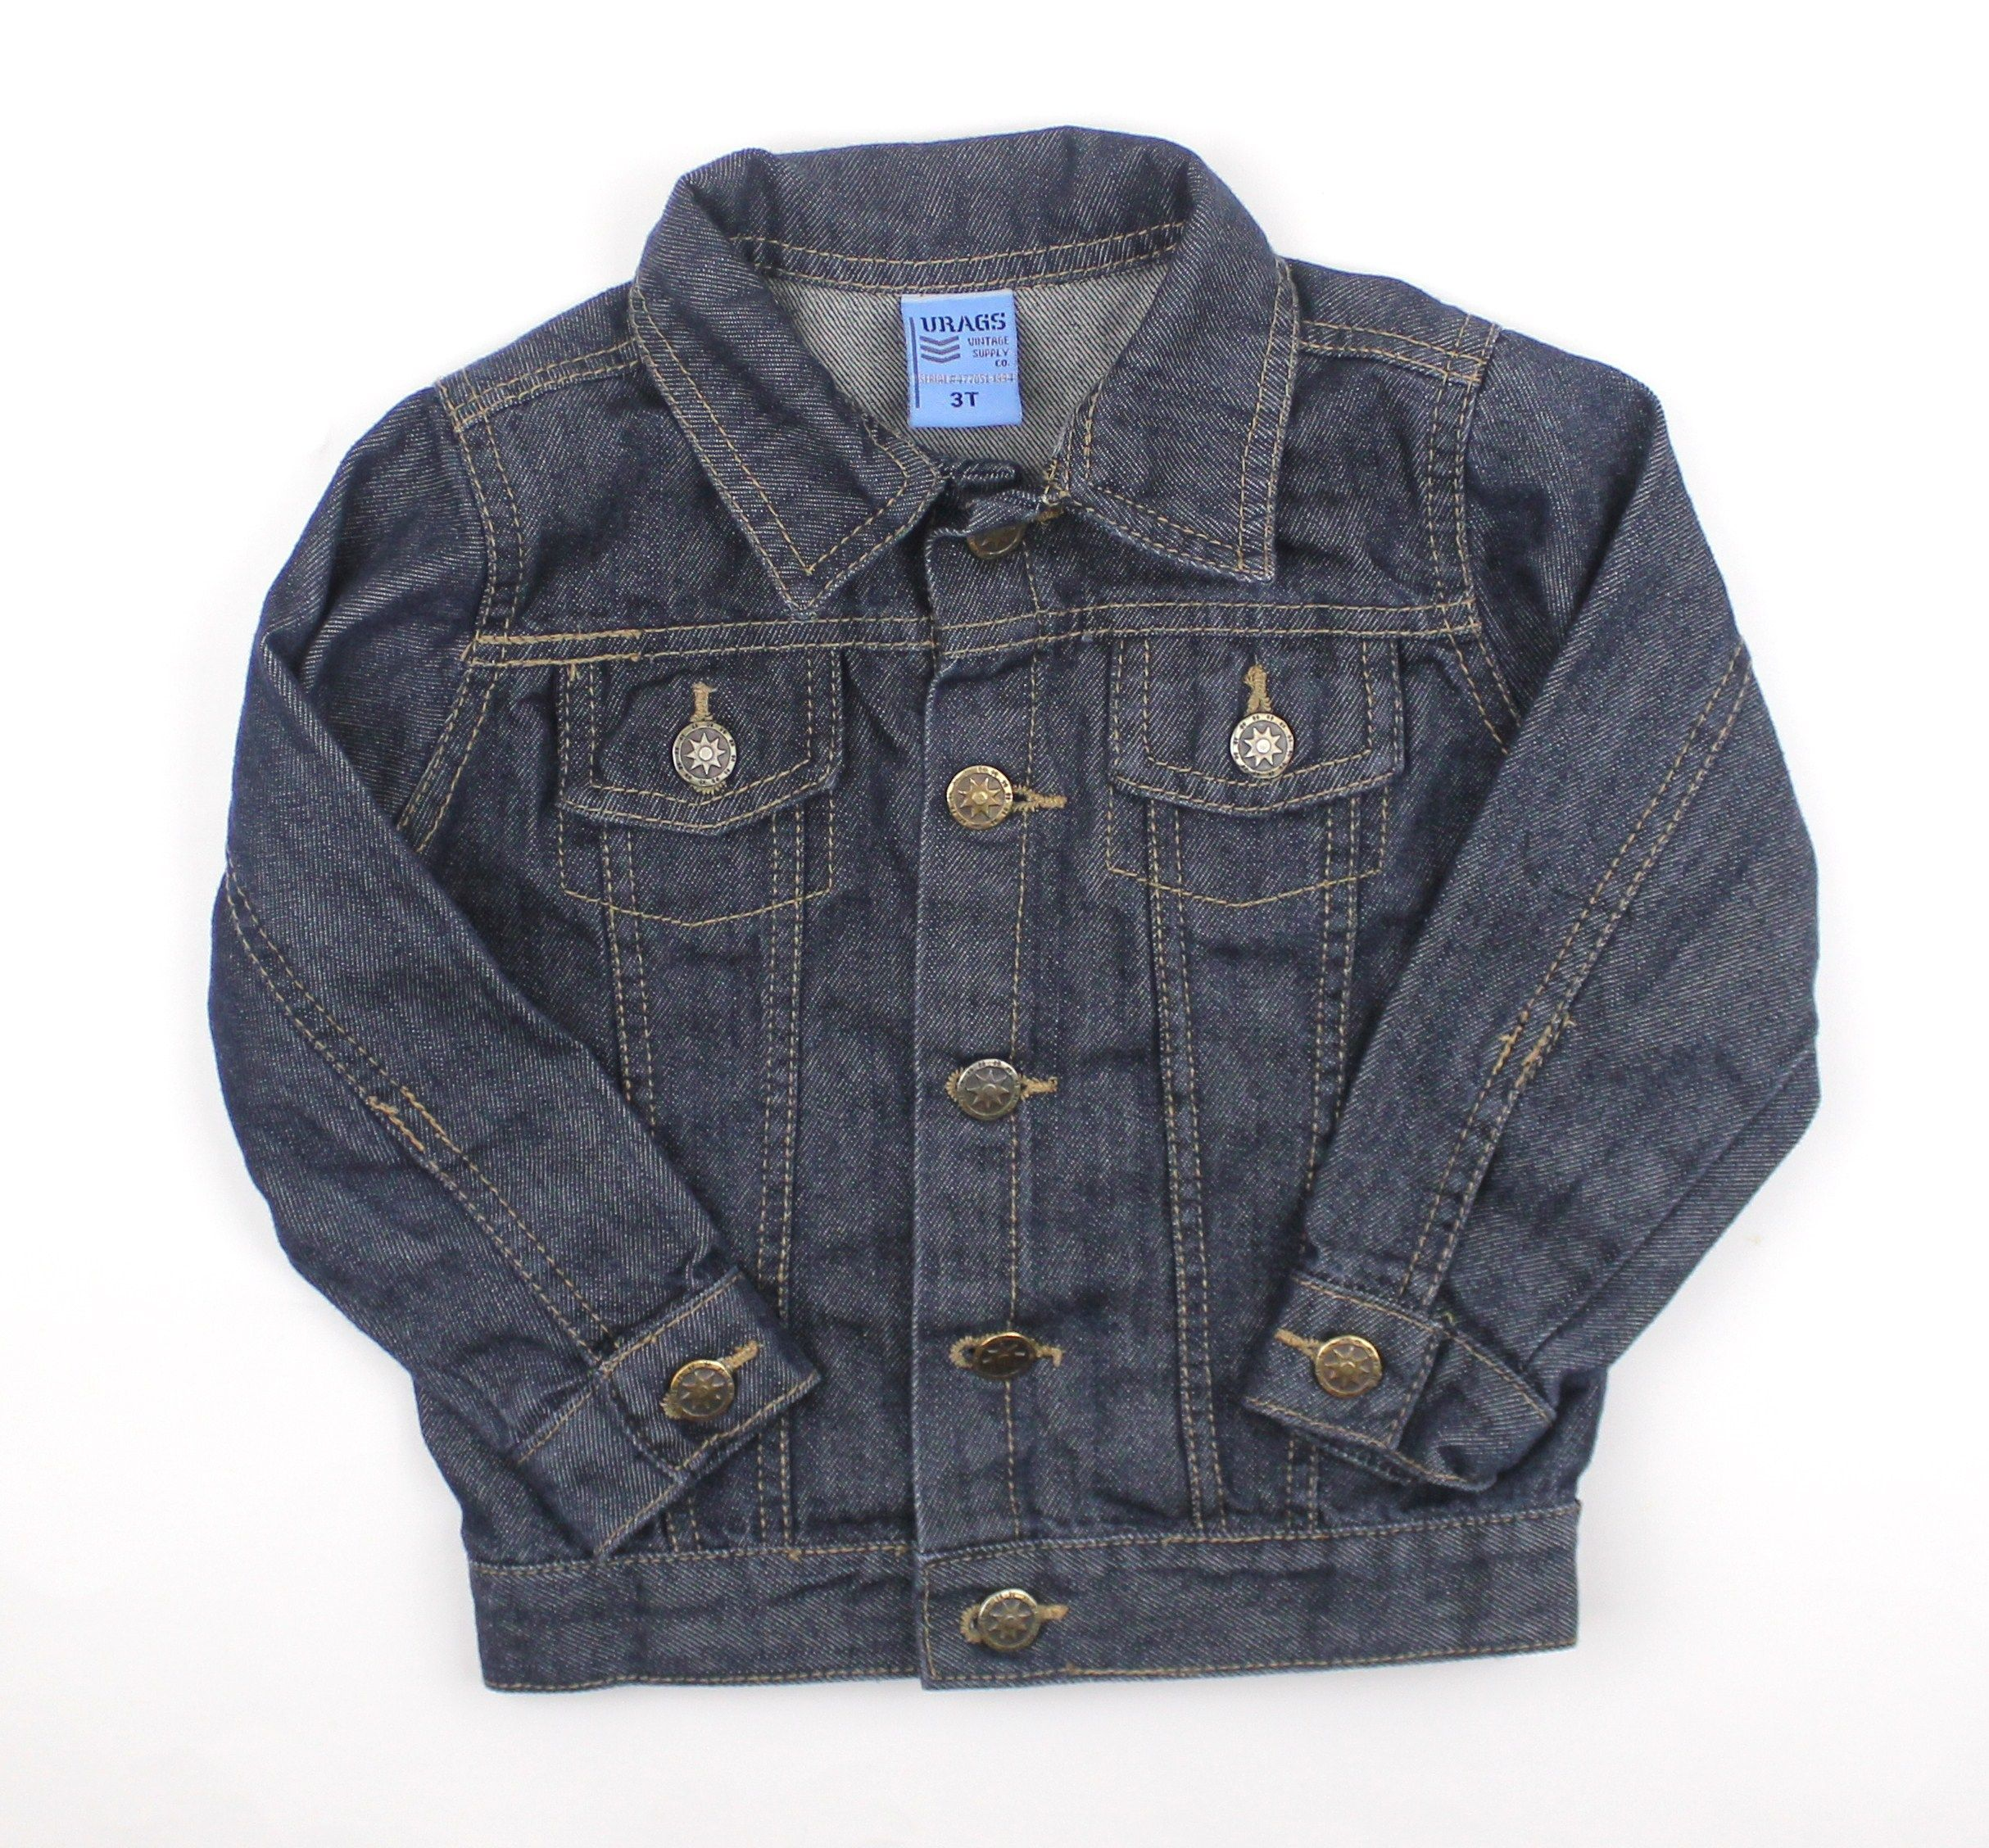 Kids Denim Jacket in Size 3T by Vintage Supply Co ly $5 25 and